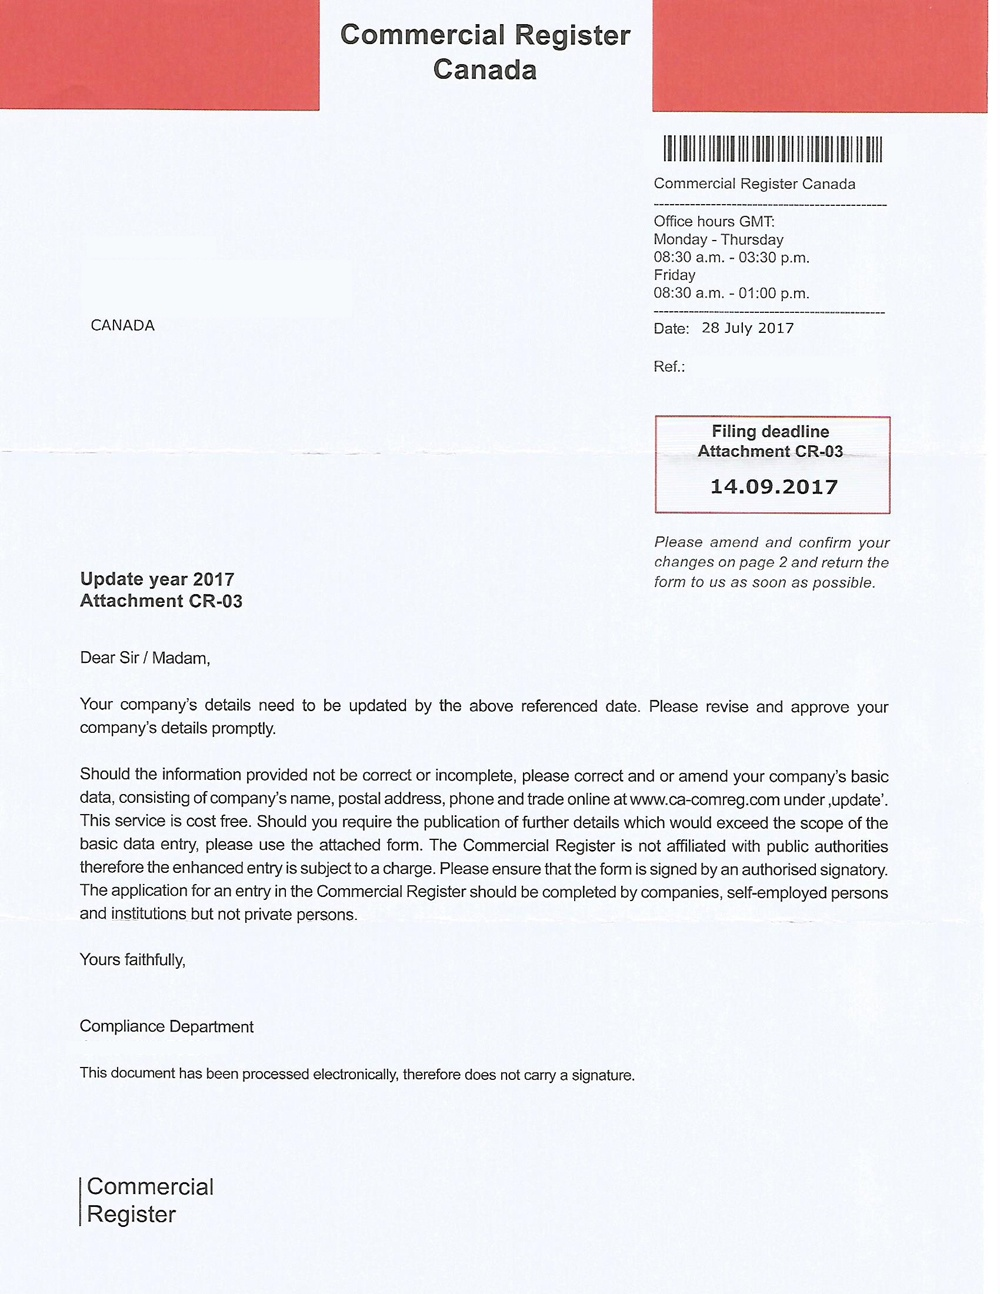 Commercial Register Canada letter